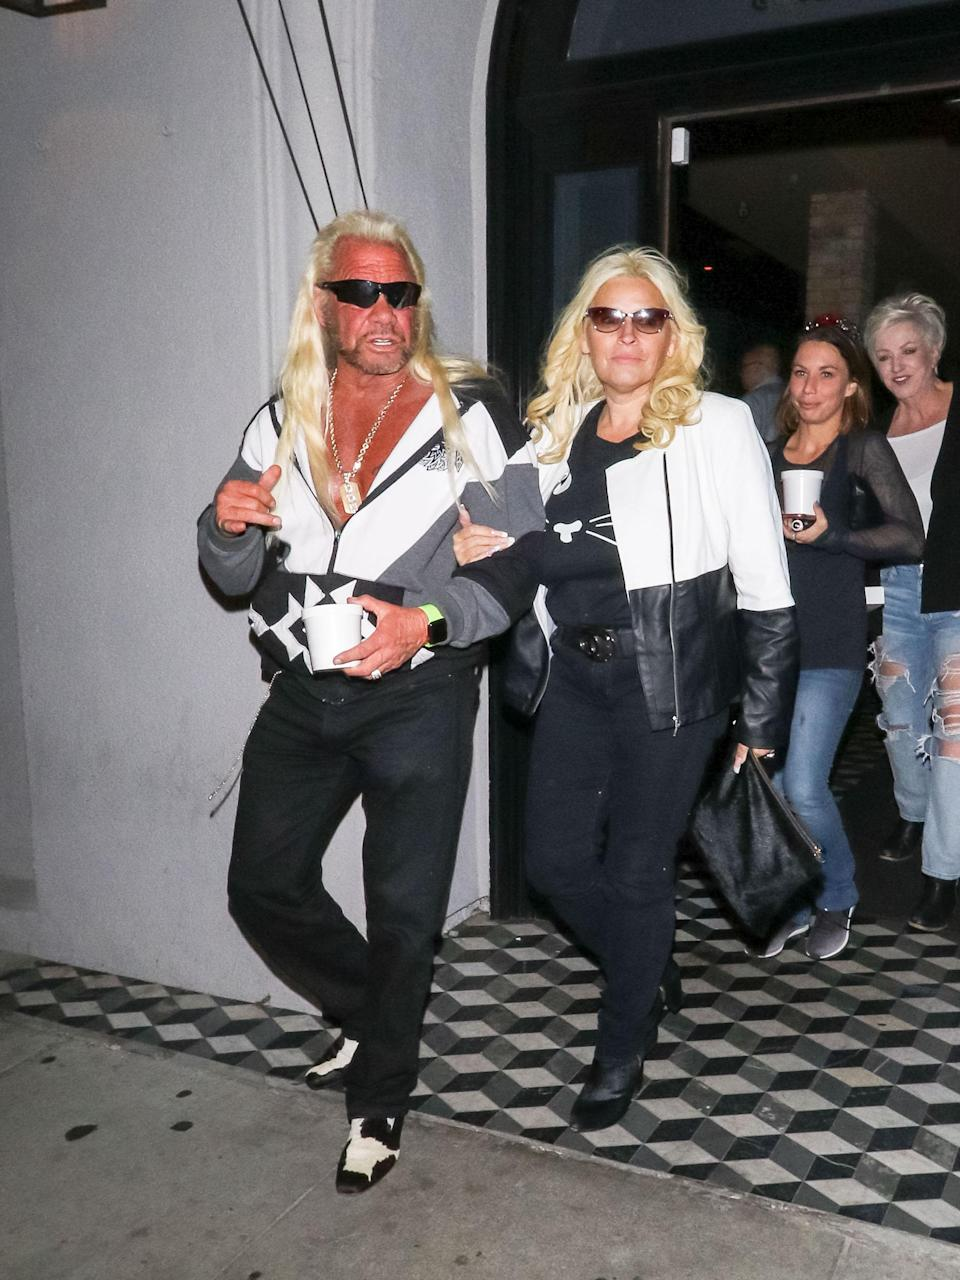 Duane Chapman and Beth Chapman are seen on November 26, 2018 in Los Angeles, California. (Photo by gotpap/Bauer-Griffin/GC Images)